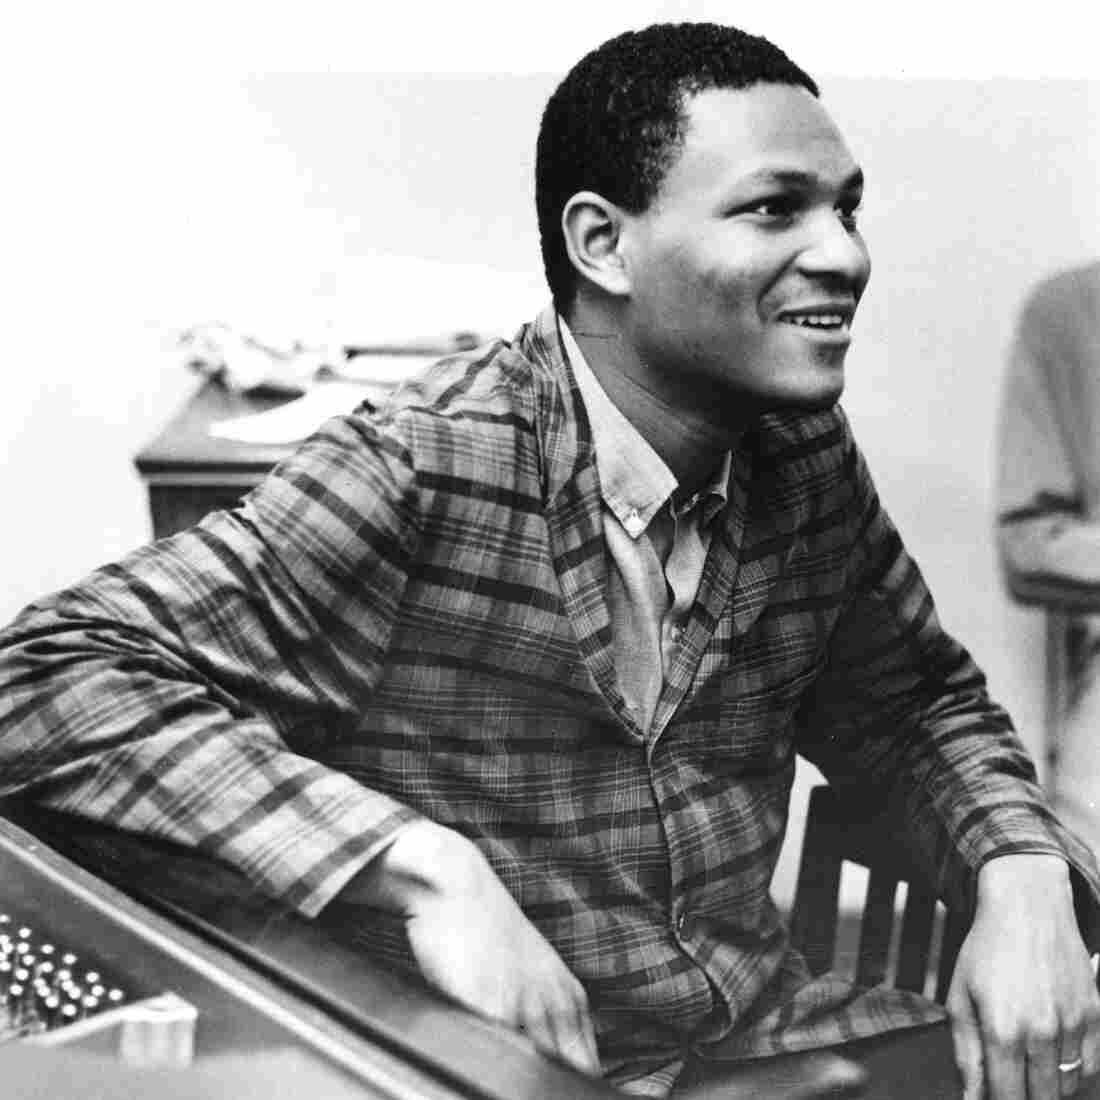 McCoy Tyner, Groundbreaking African-American Pianist of 20th Century Jazz, Dies at 81